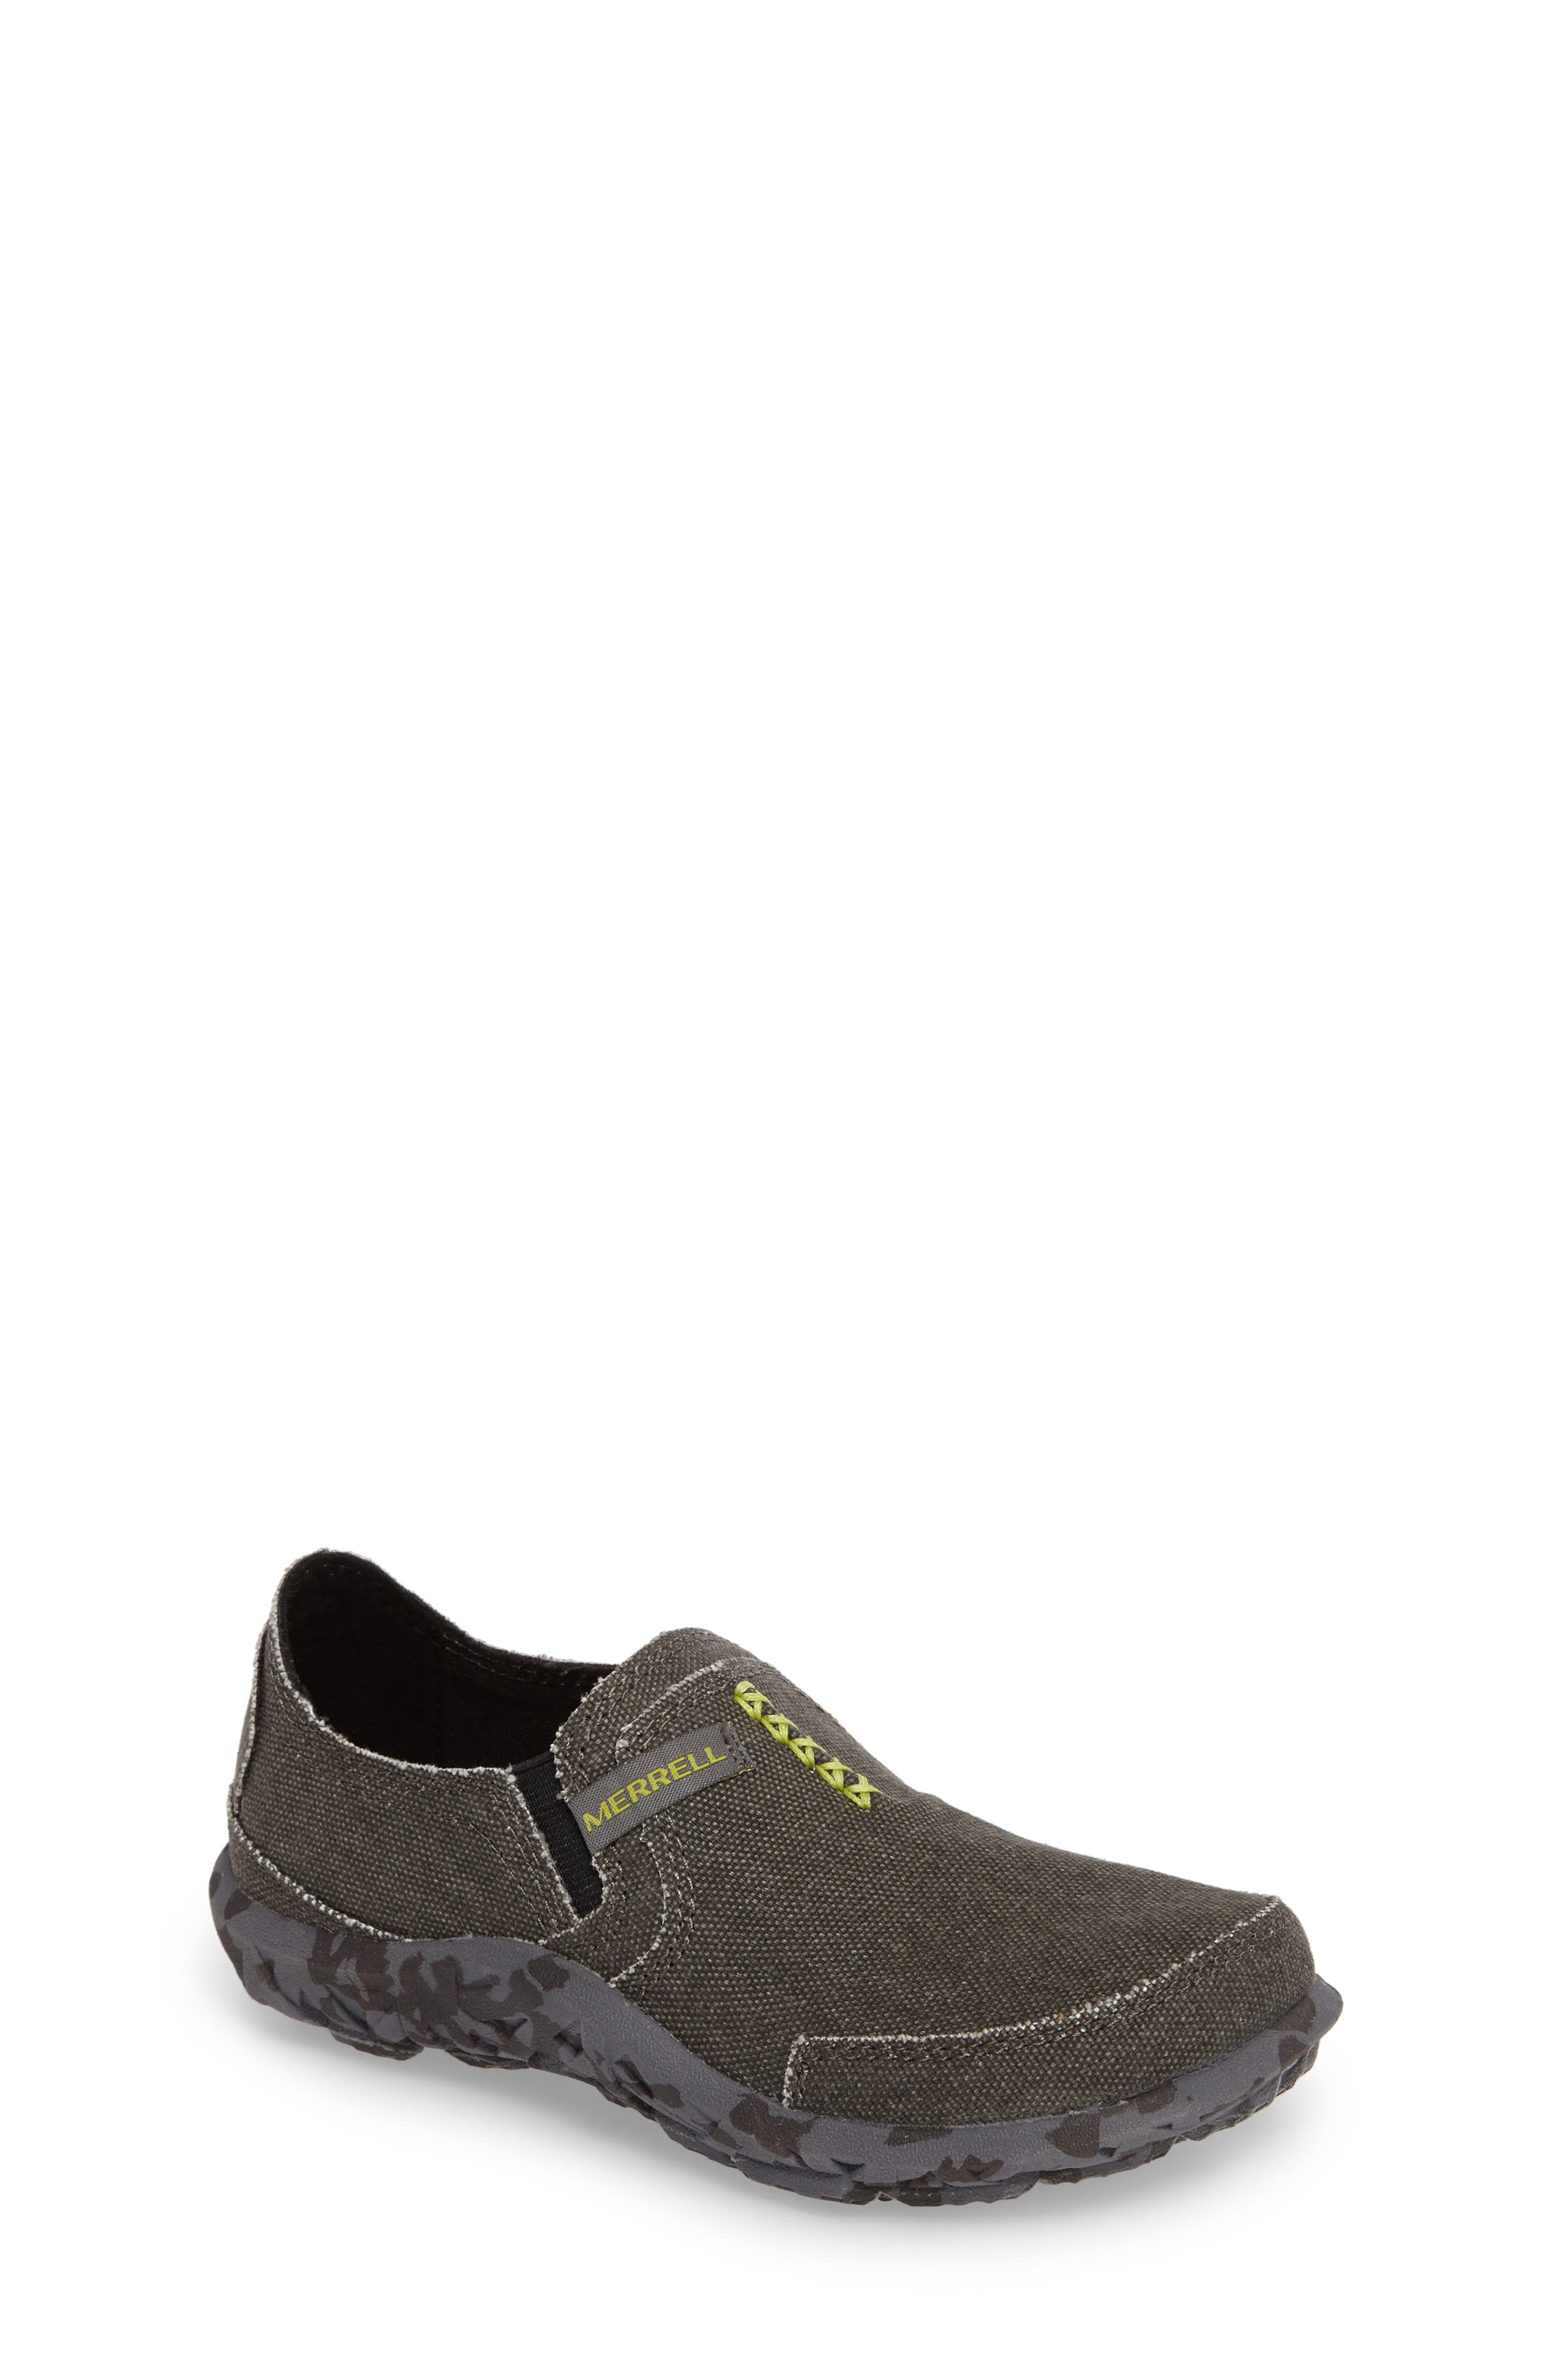 Main Image - Merrell Slip-On (Toddler, Little Kid & Big Kid)